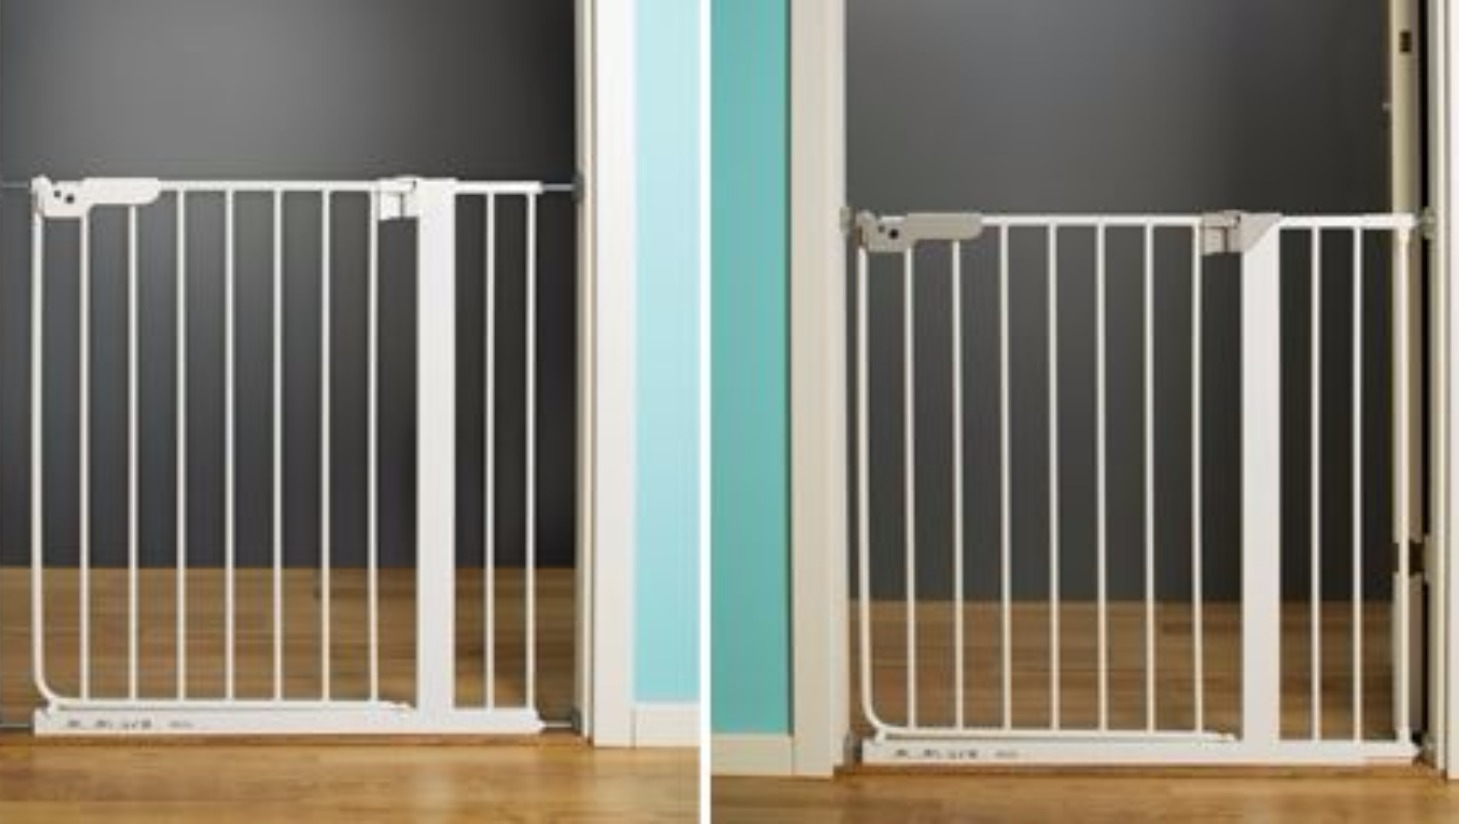 Ikea Recalls Safety Gates After Children Fall Down Stairs